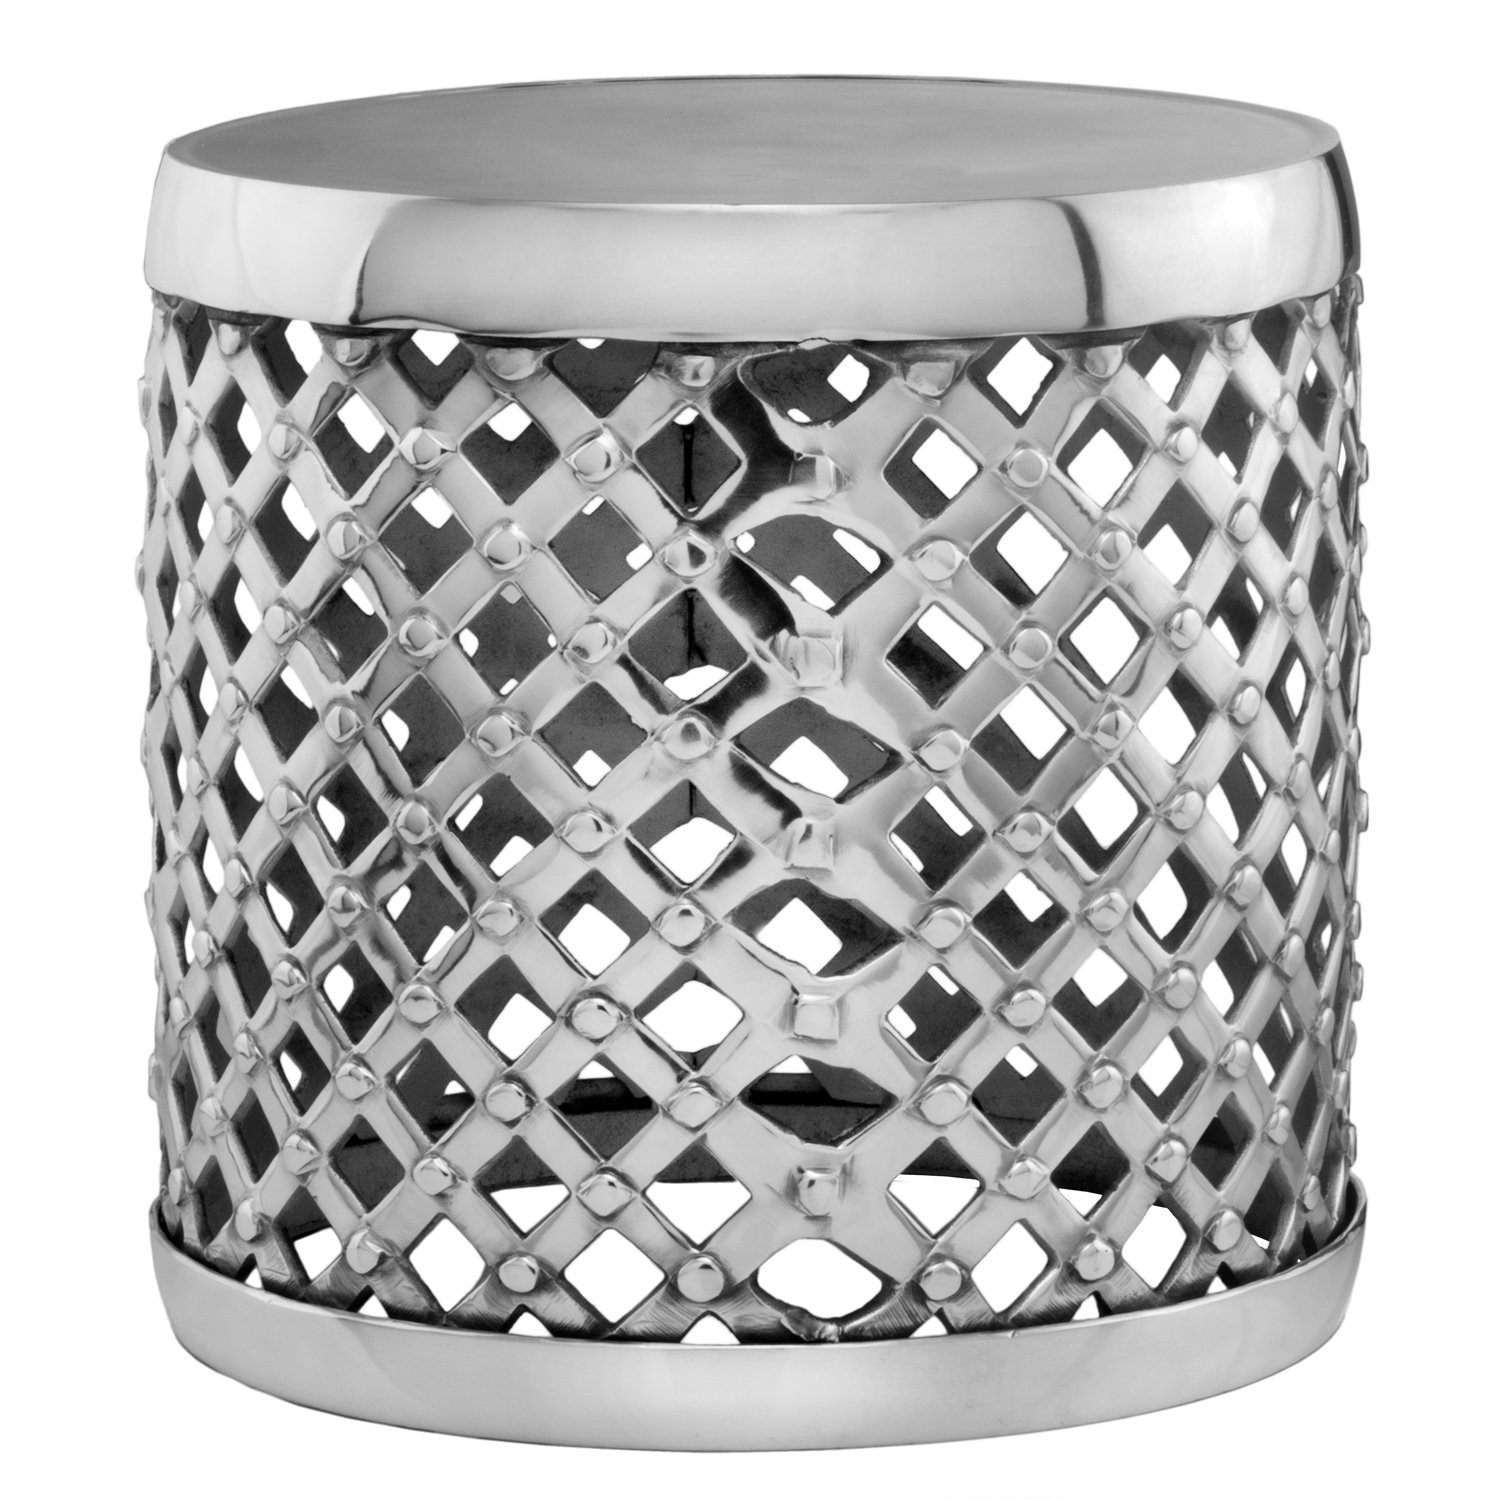 silvertone lattice aluminum drum accent table free shipping cylinder today colorful sofa buffet sideboard ikea garden storage box oak lamp wicker baskets pier one coupon chair